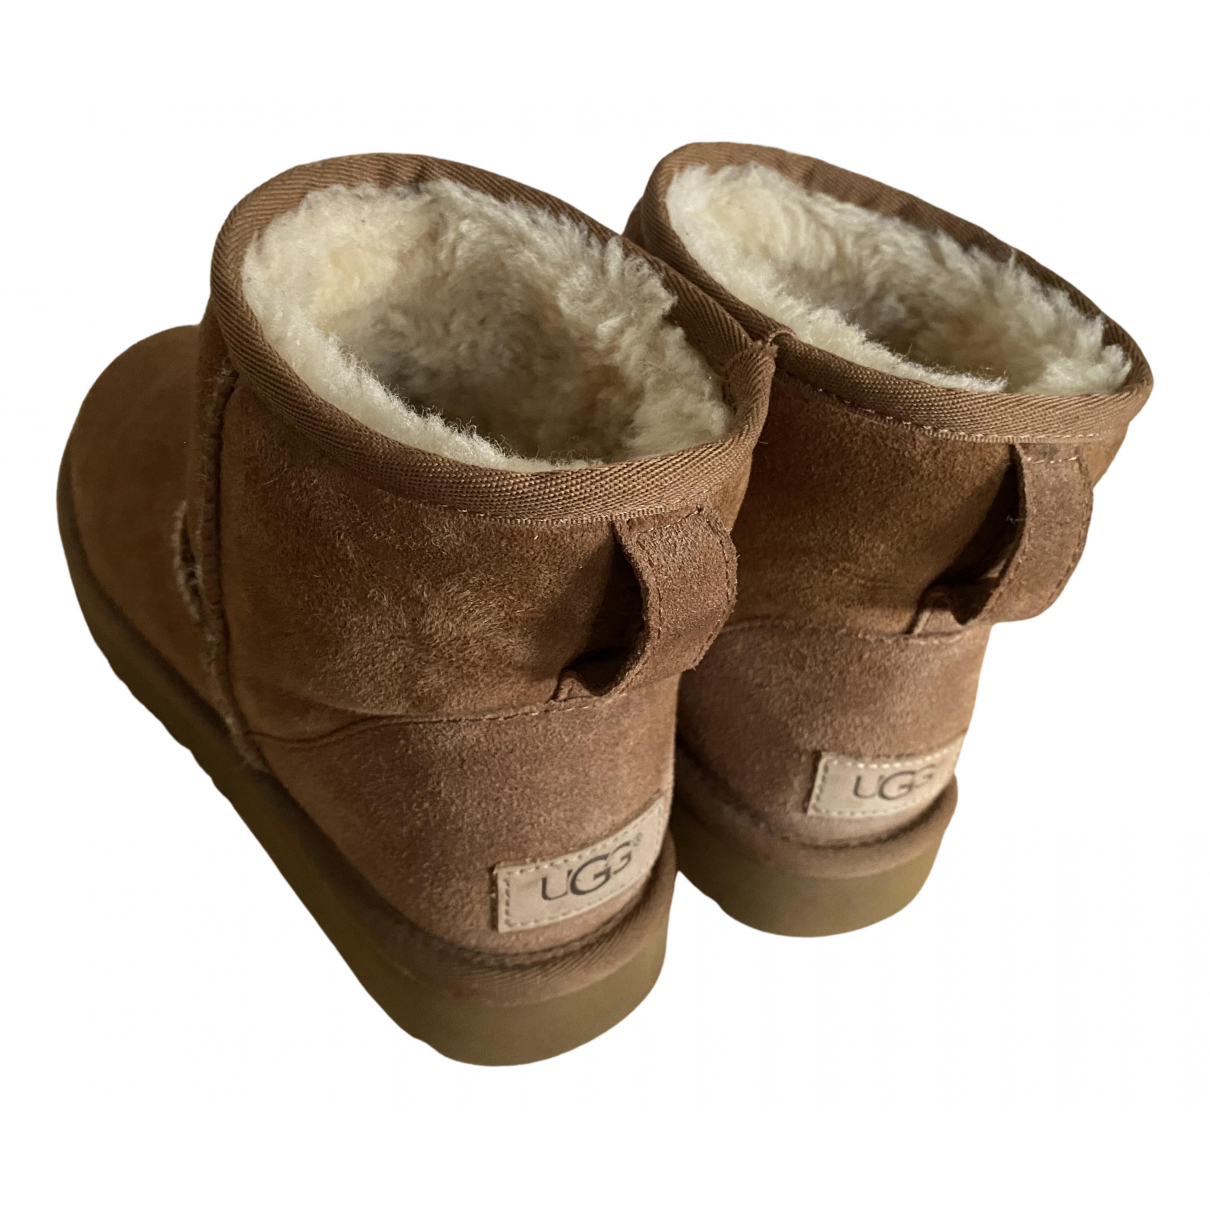 Ugg N Camel Leather Boots for Women 5.5 UK